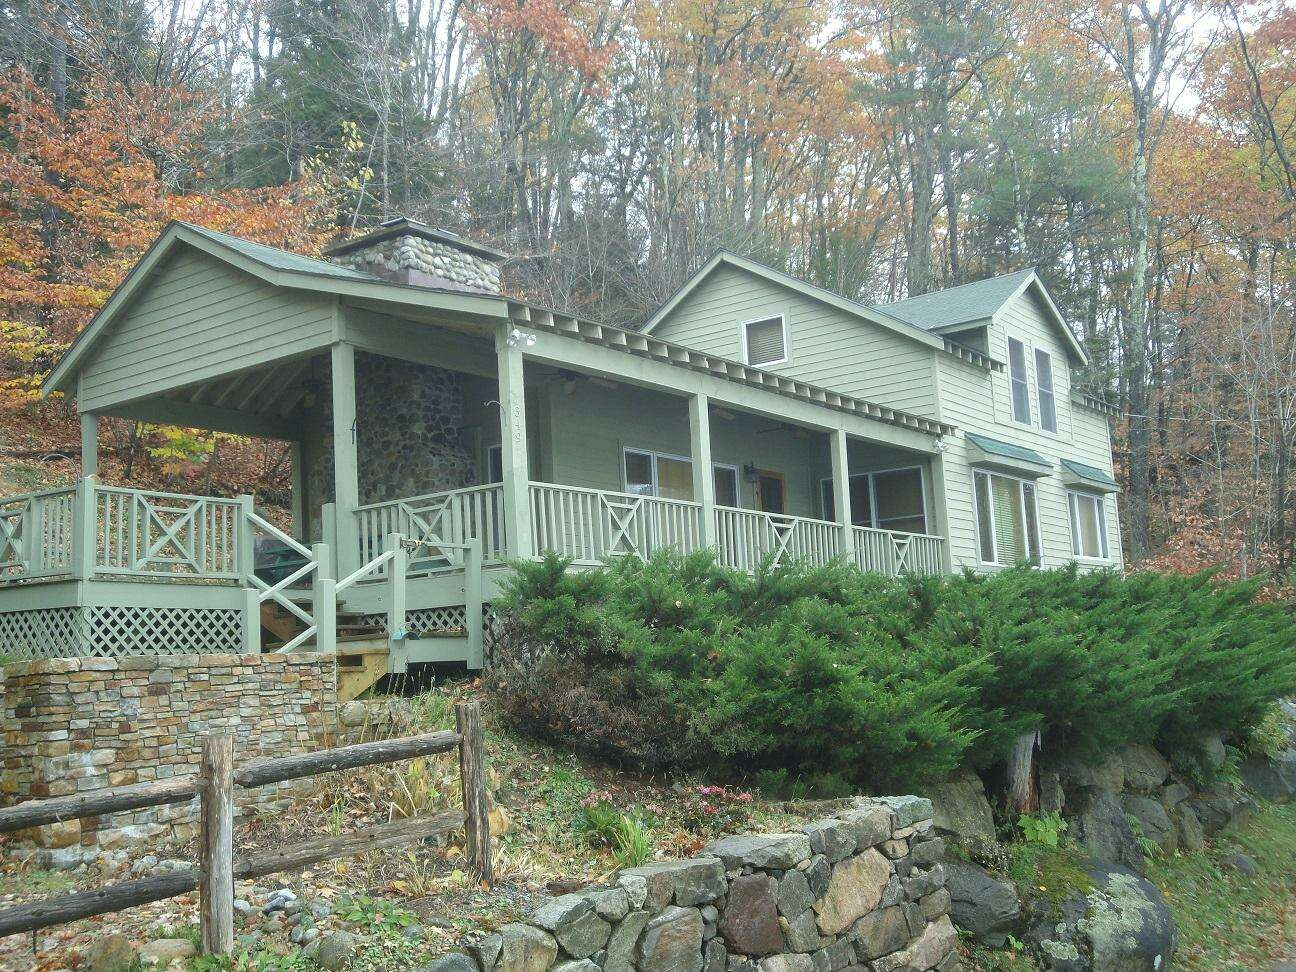 Vacation Property for Sale at 349 N Shore Rd Schroon Lake, New York 12870 United States